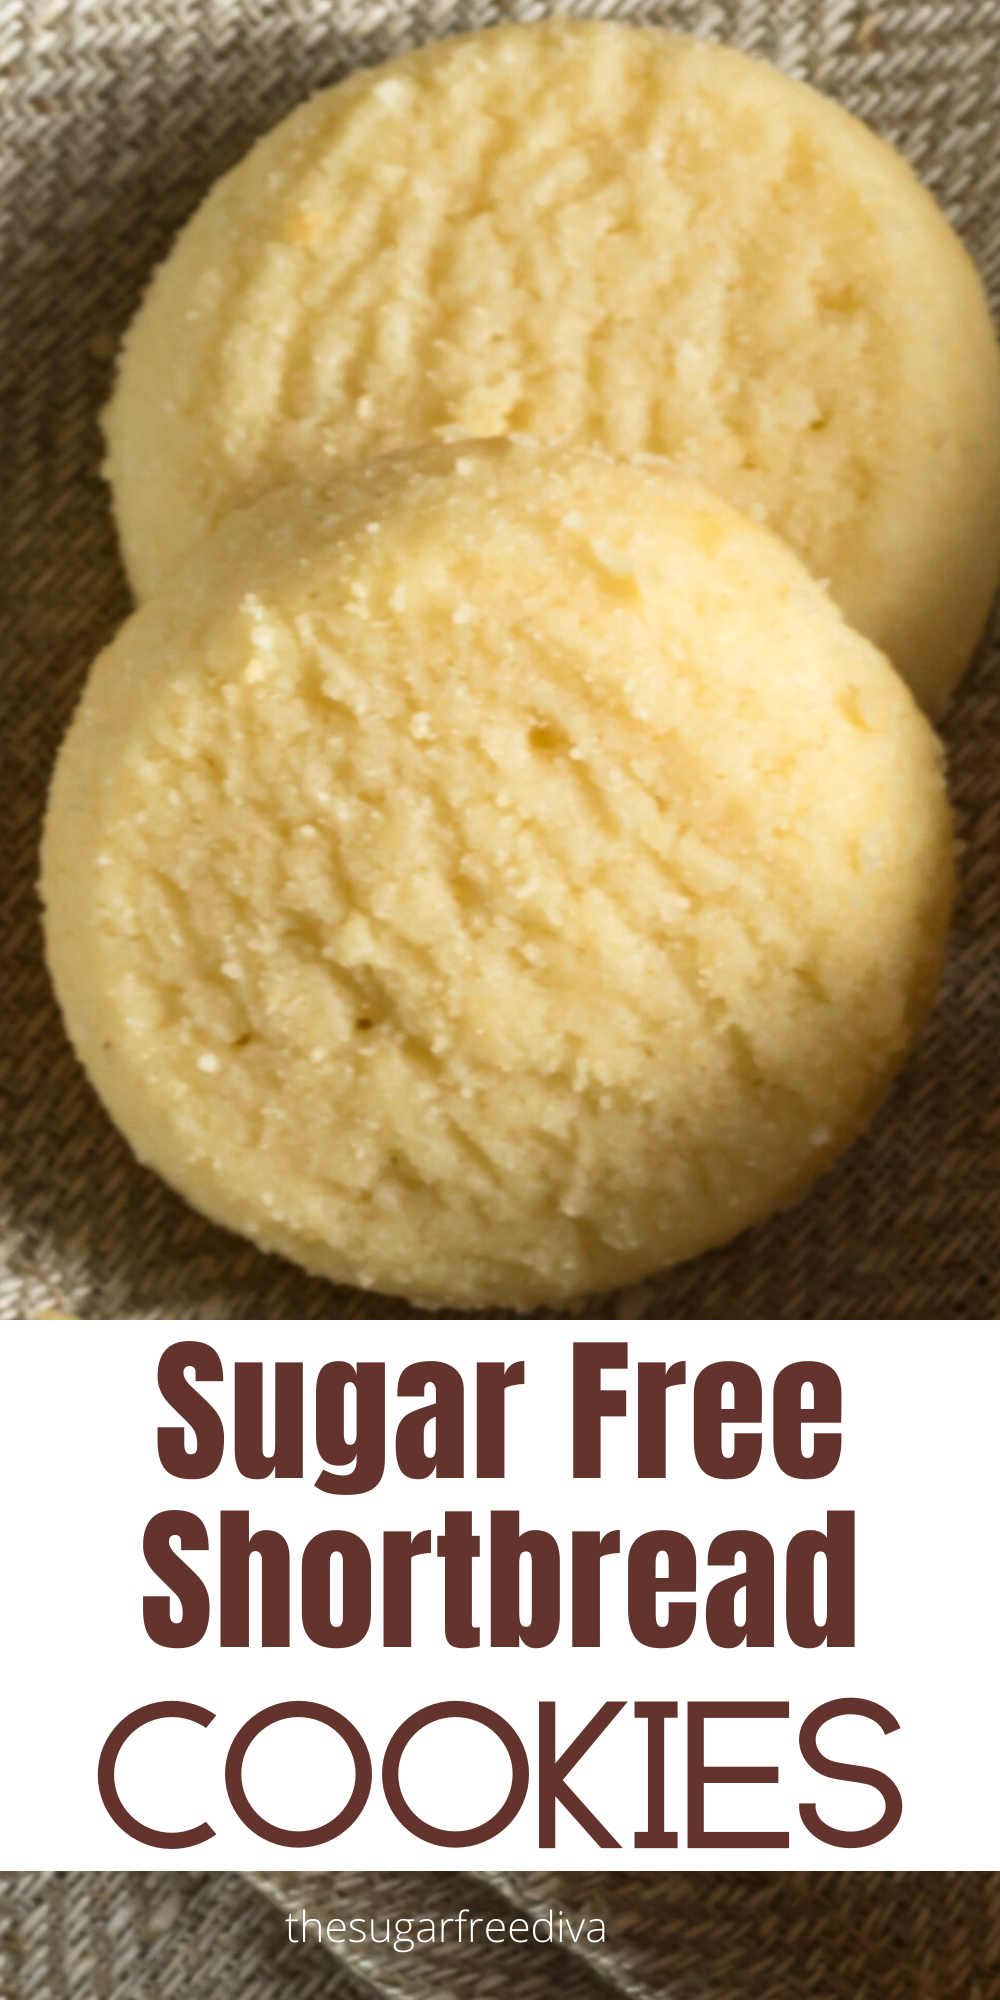 How To Make Sugar Free Shortbread Cookies Sugar Free Cookies Sugar Free Cookies Diabetic Sugar Free Recipes